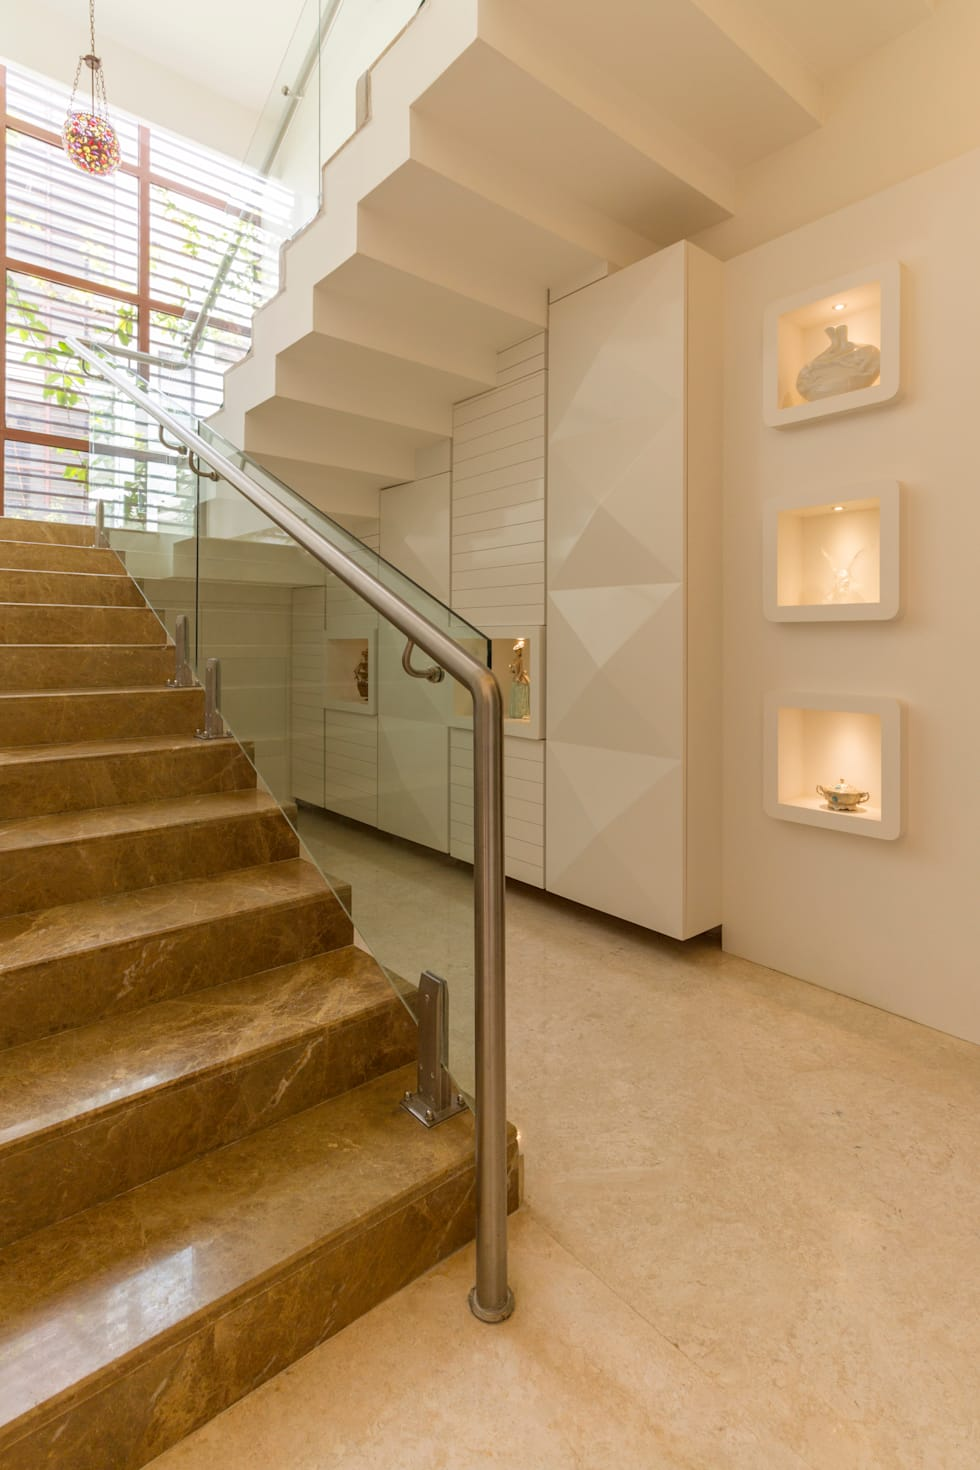 Lit niche :  Stairs by NVT Quality Build solution